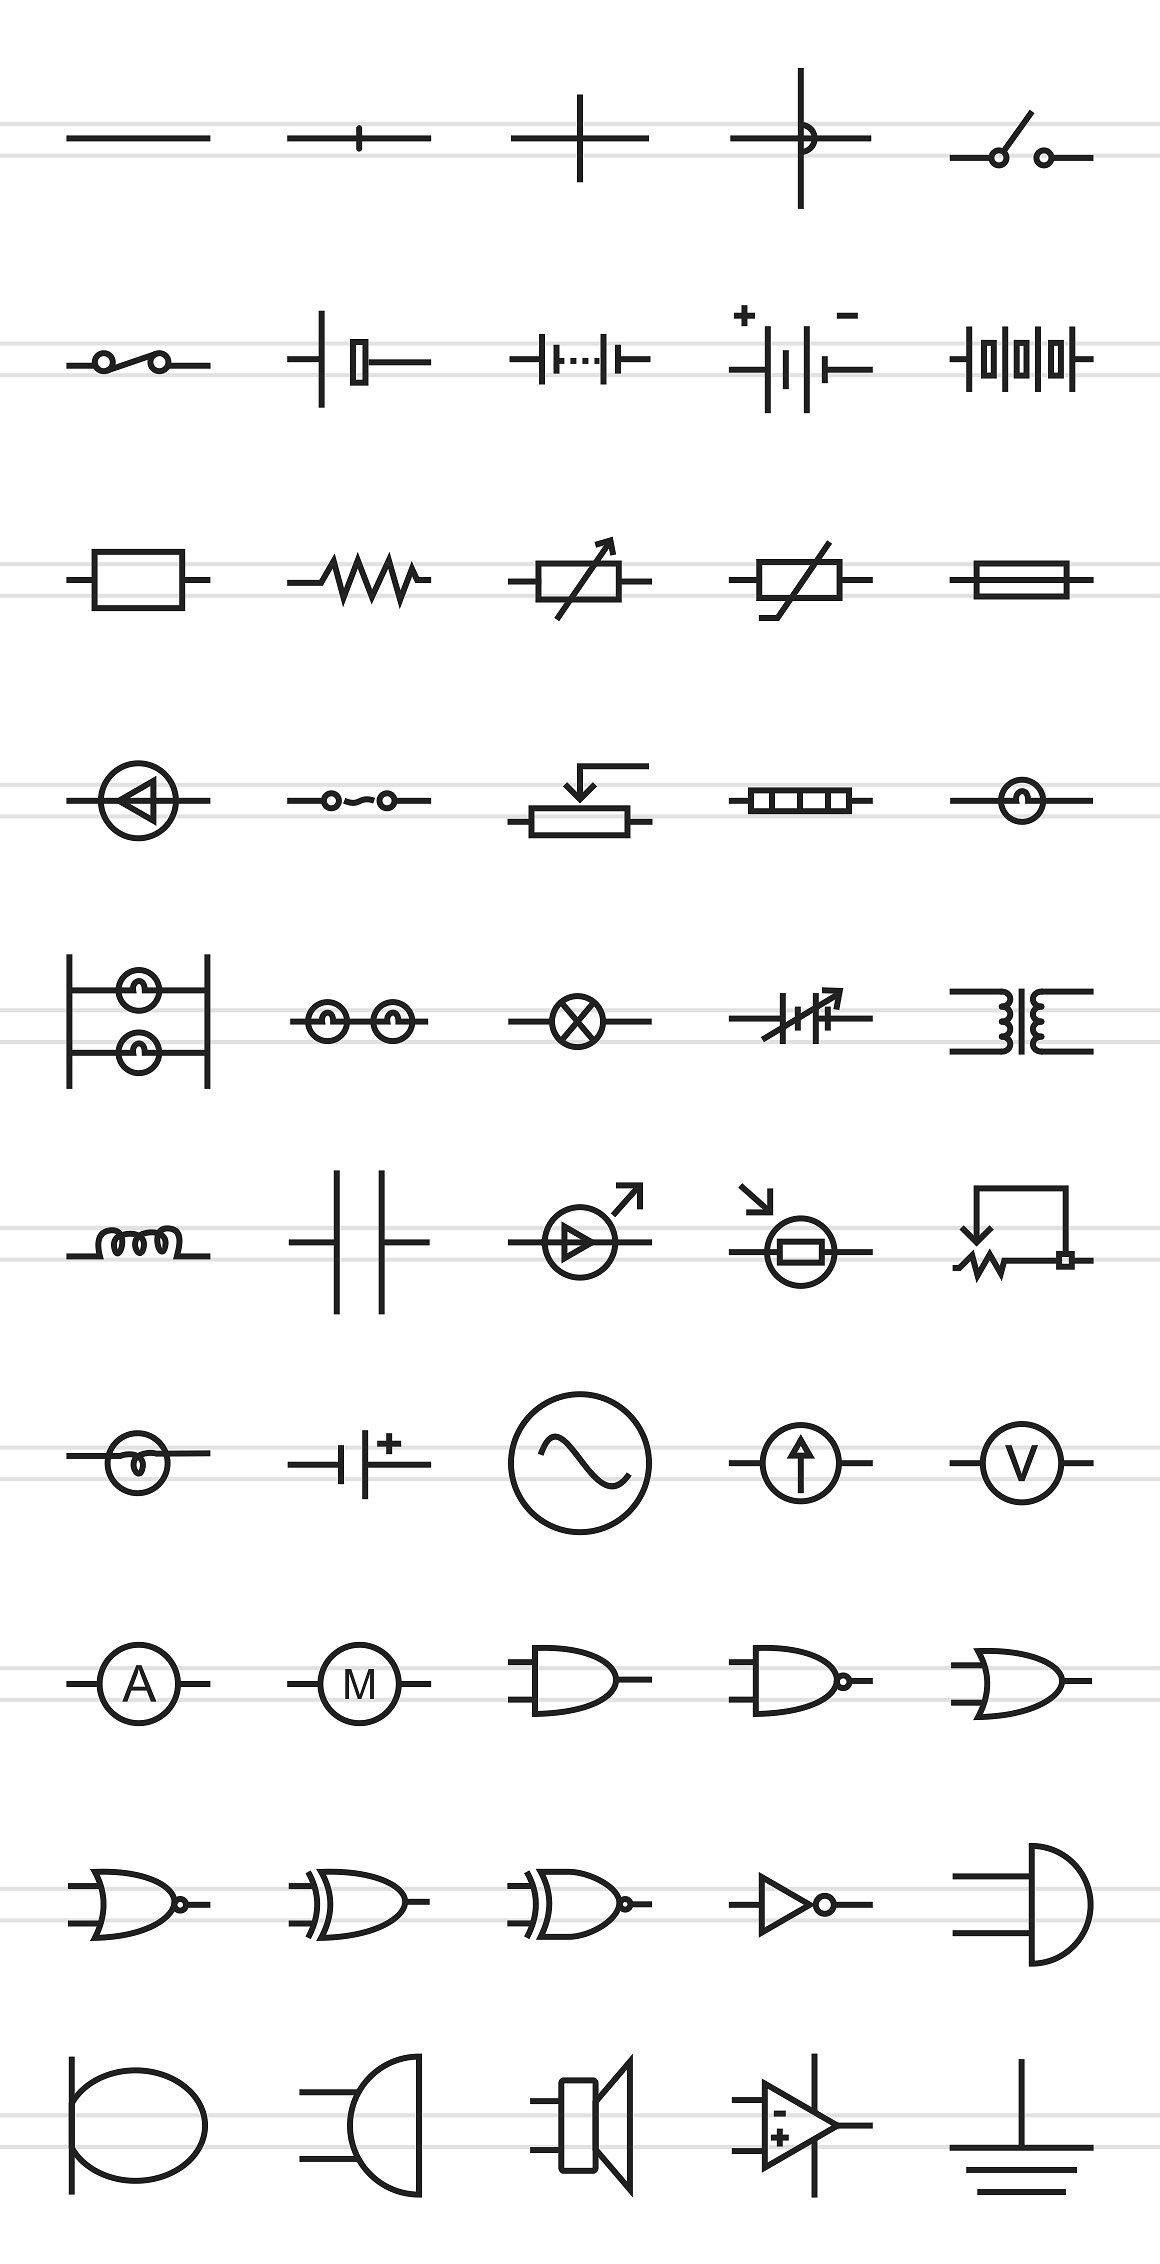 50 electric circuits line icons closed cell joined switch [ 1160 x 2264 Pixel ]